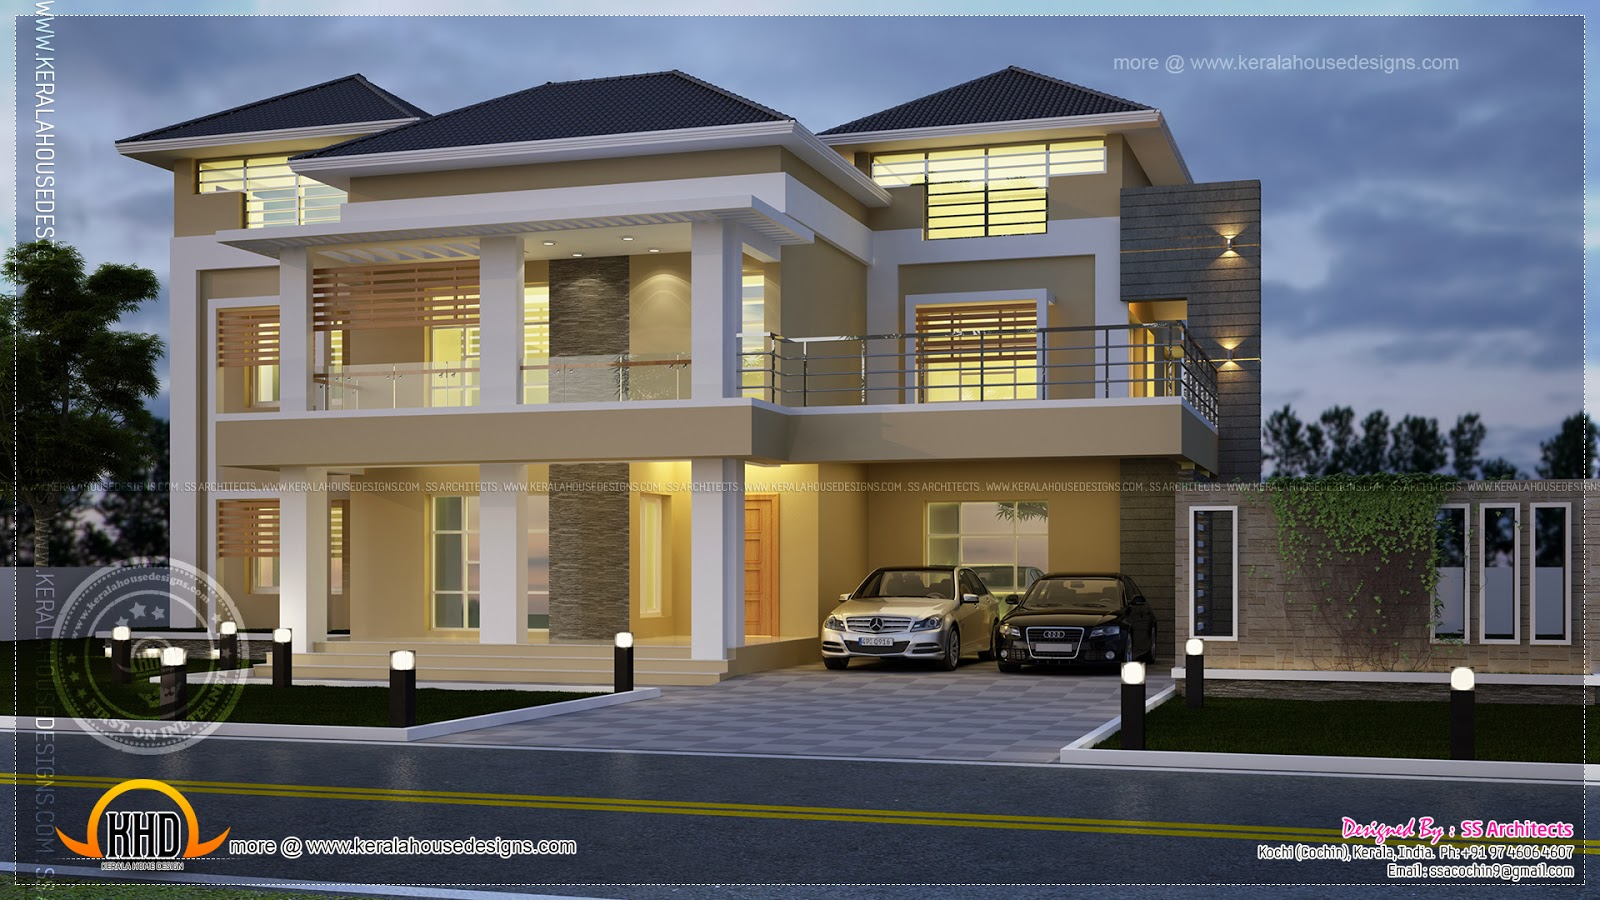 Modern villa night view elevation kerala home design and for Contemporary villa plans